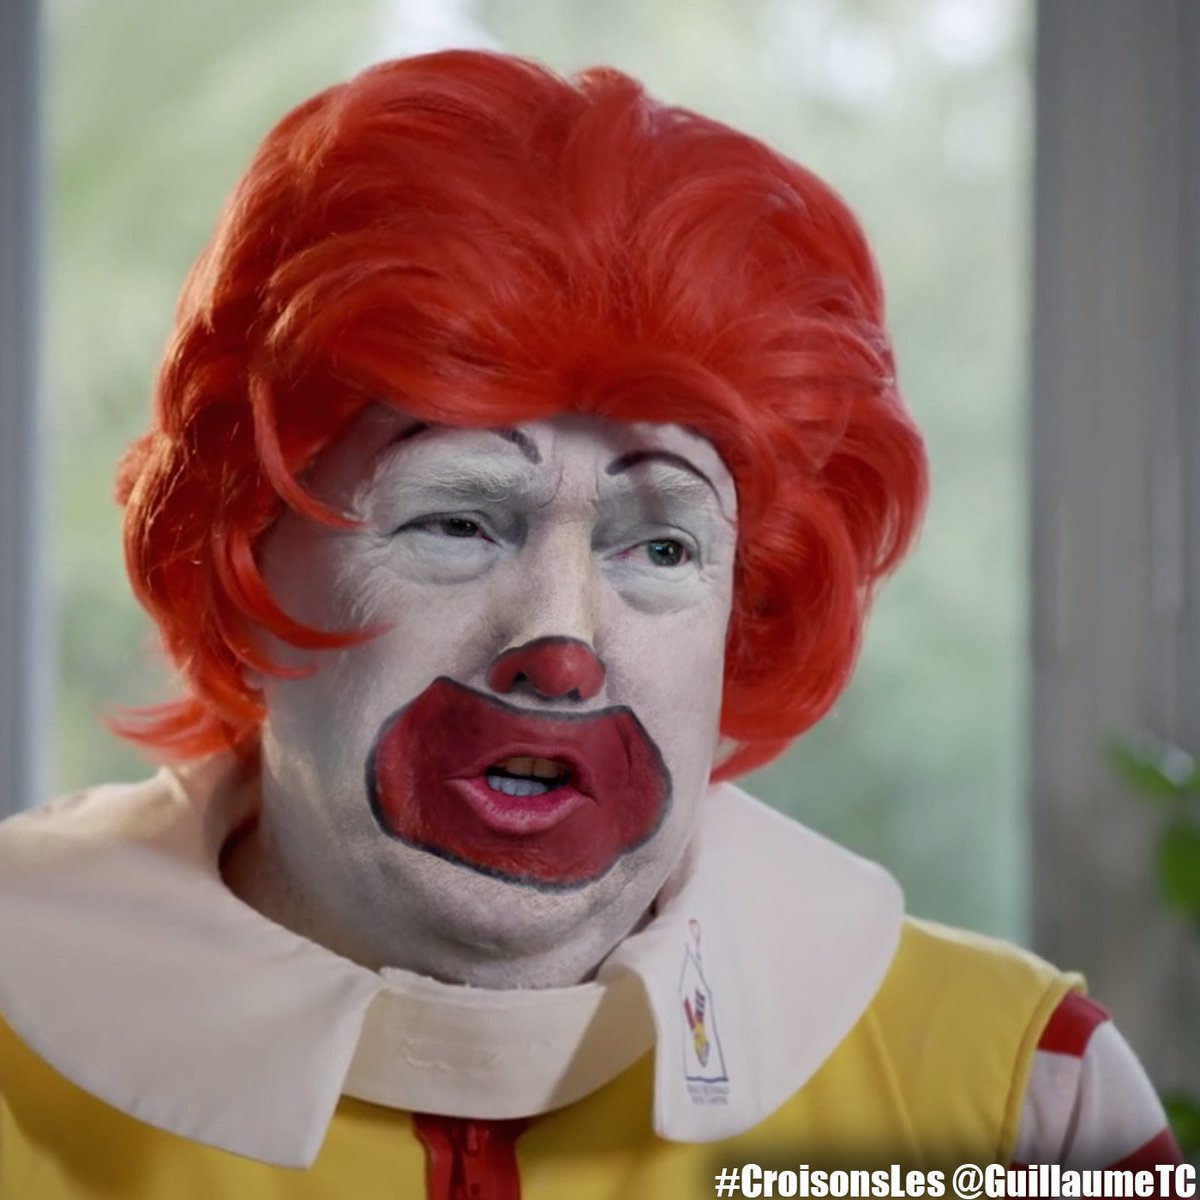 @StephenKing The cheese is sliding off his burger.